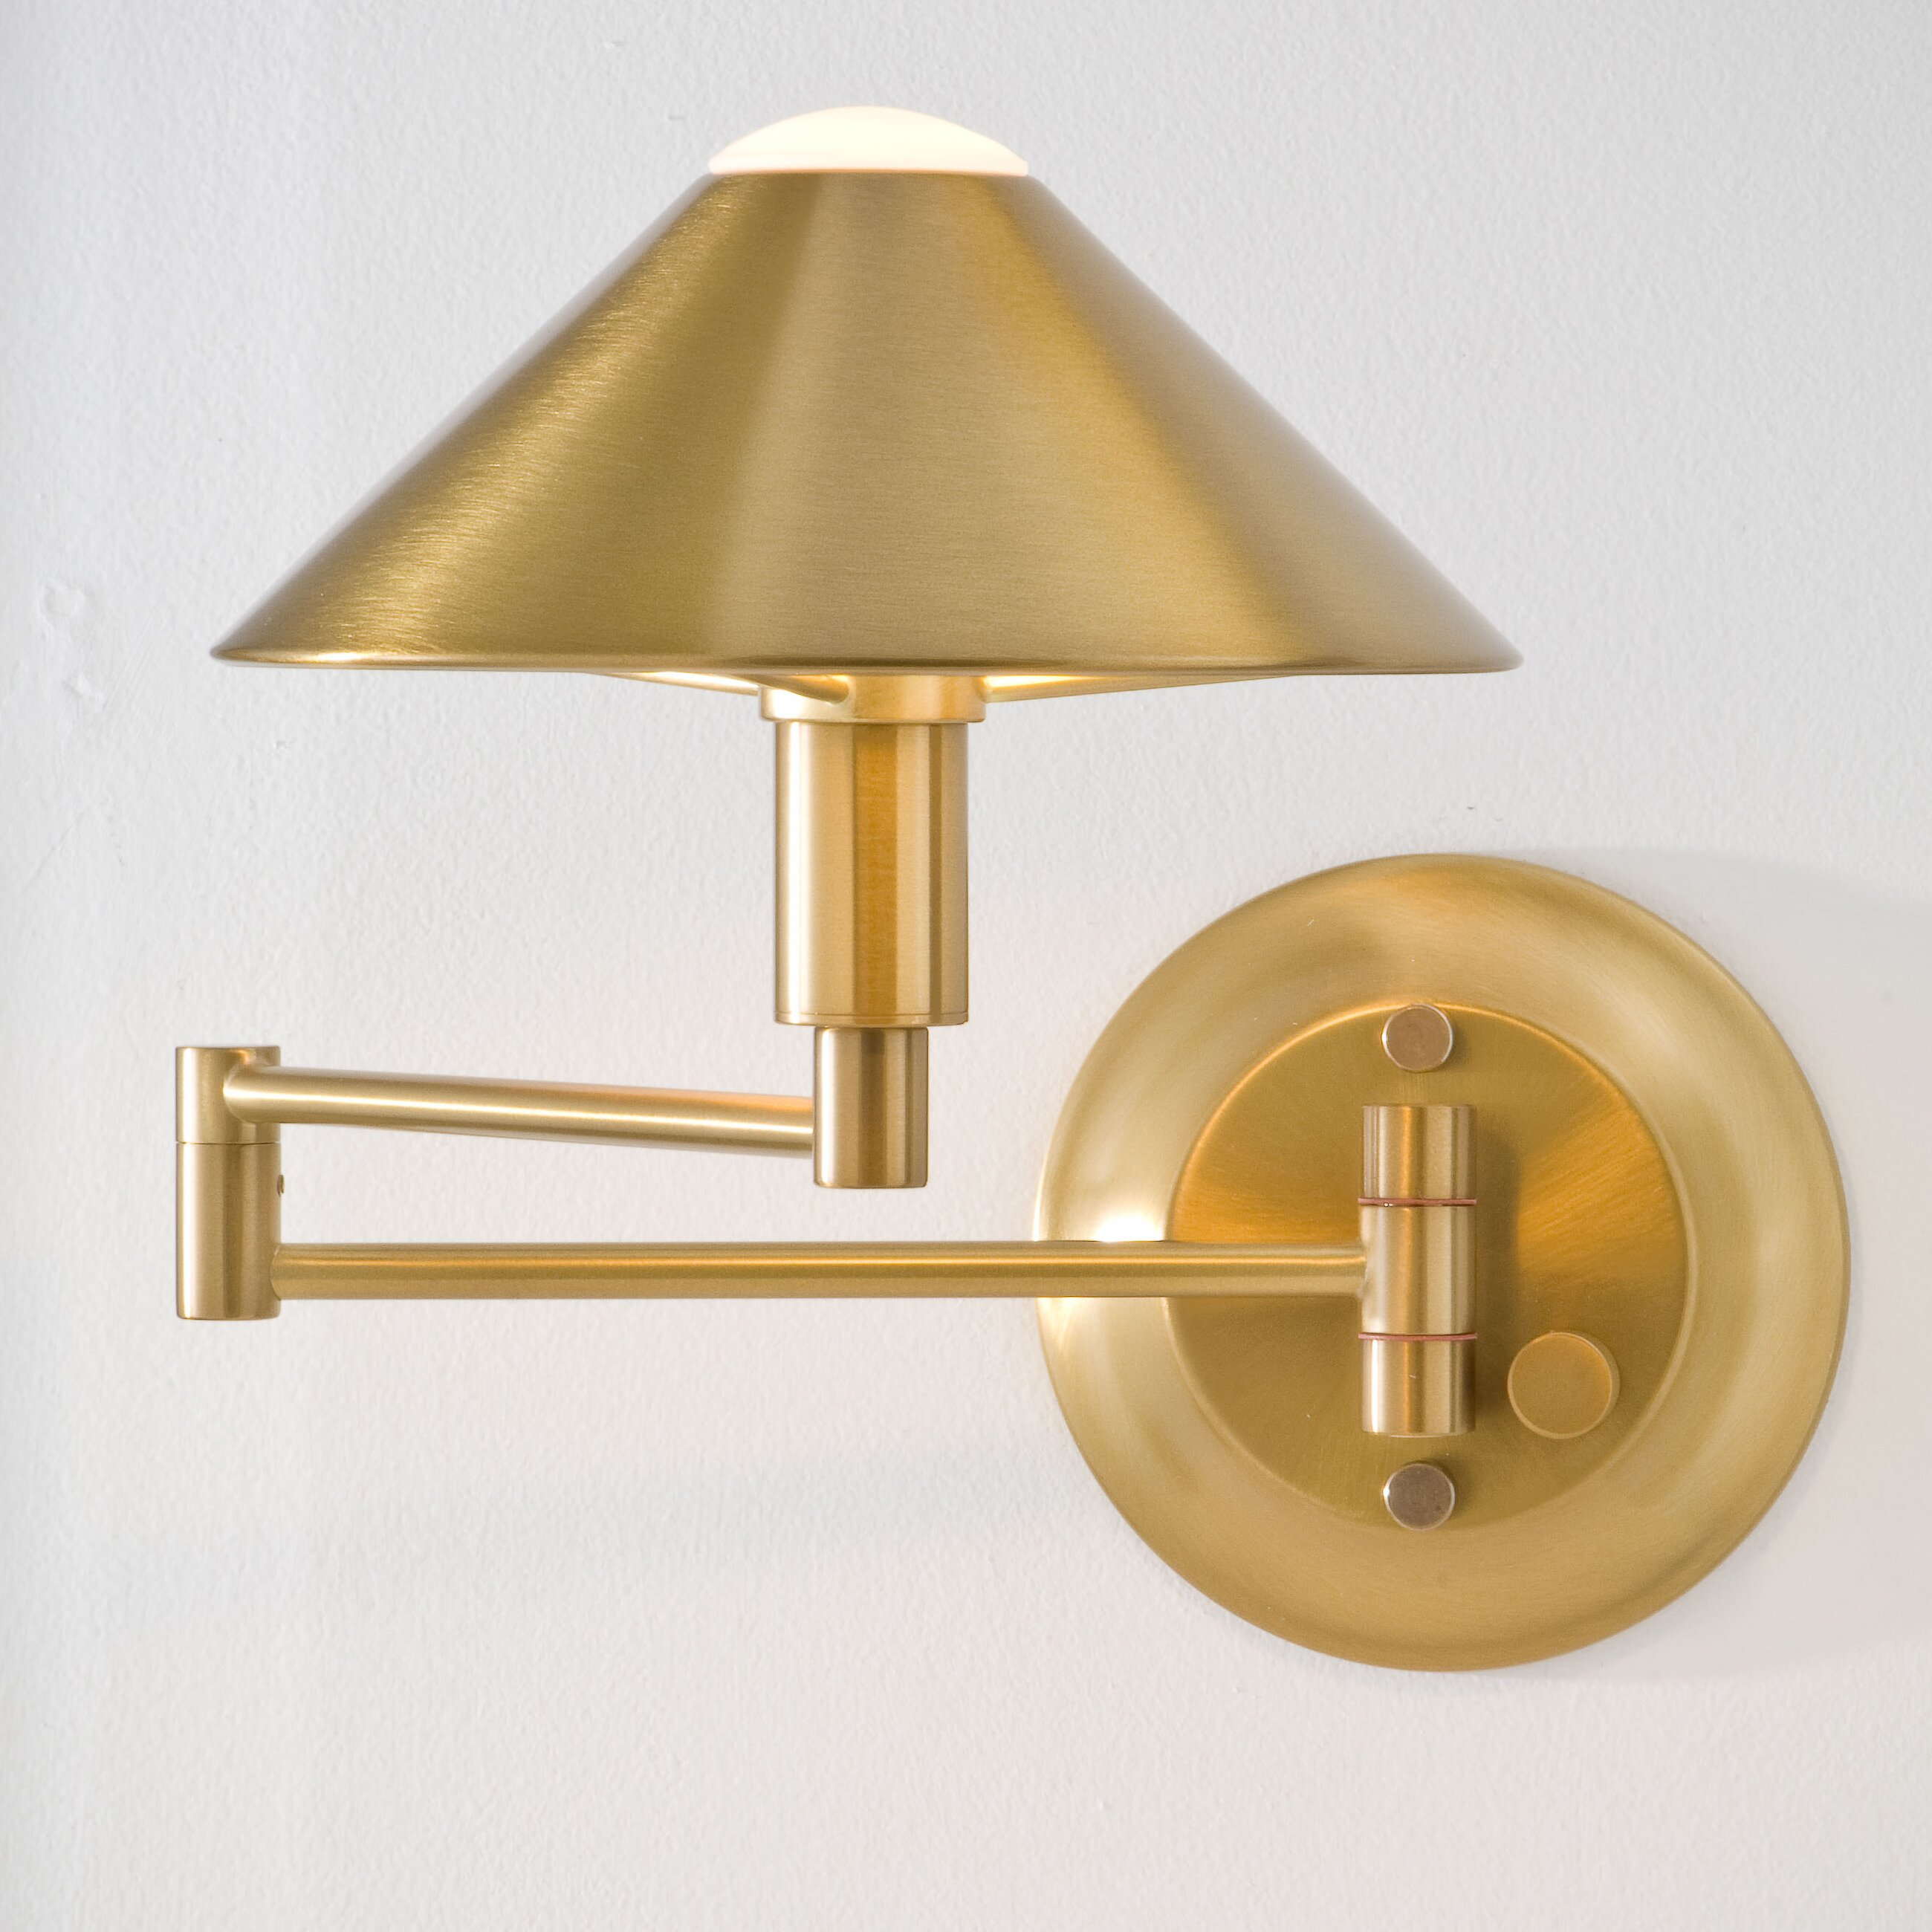 1 Light Wall Sconce Wayfair